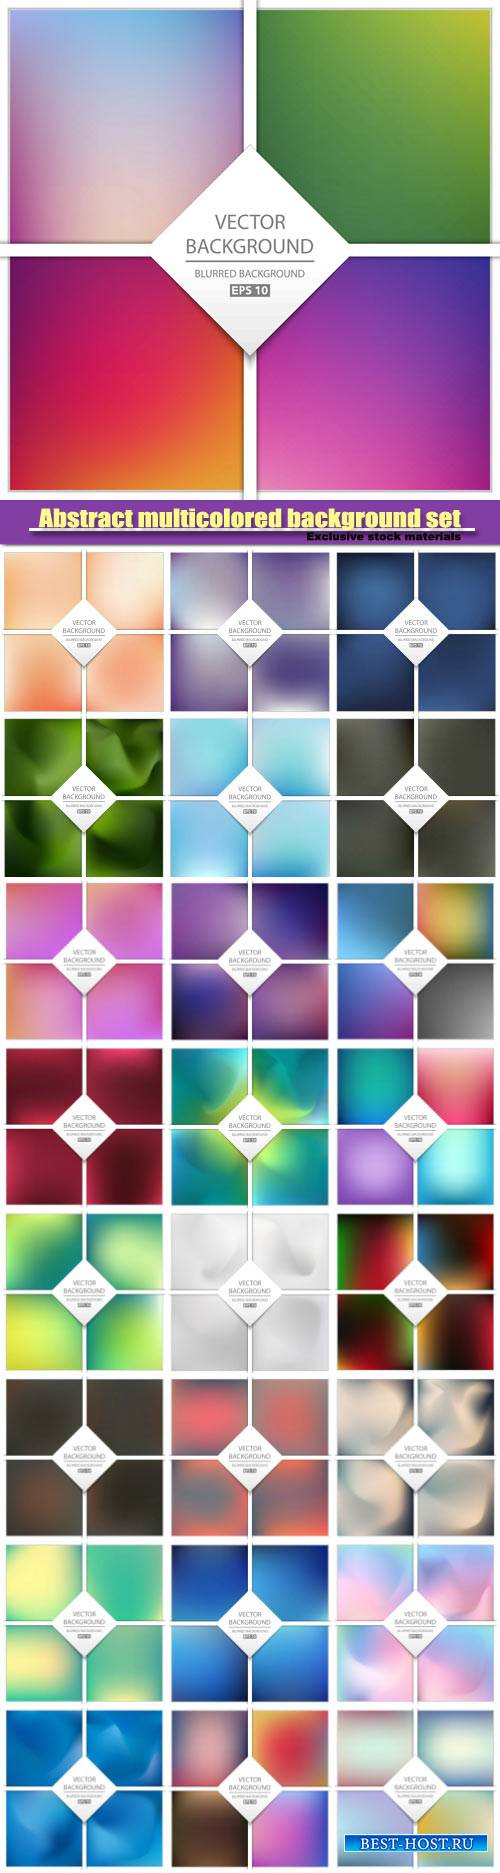 Abstract vector multicolored blurred background set